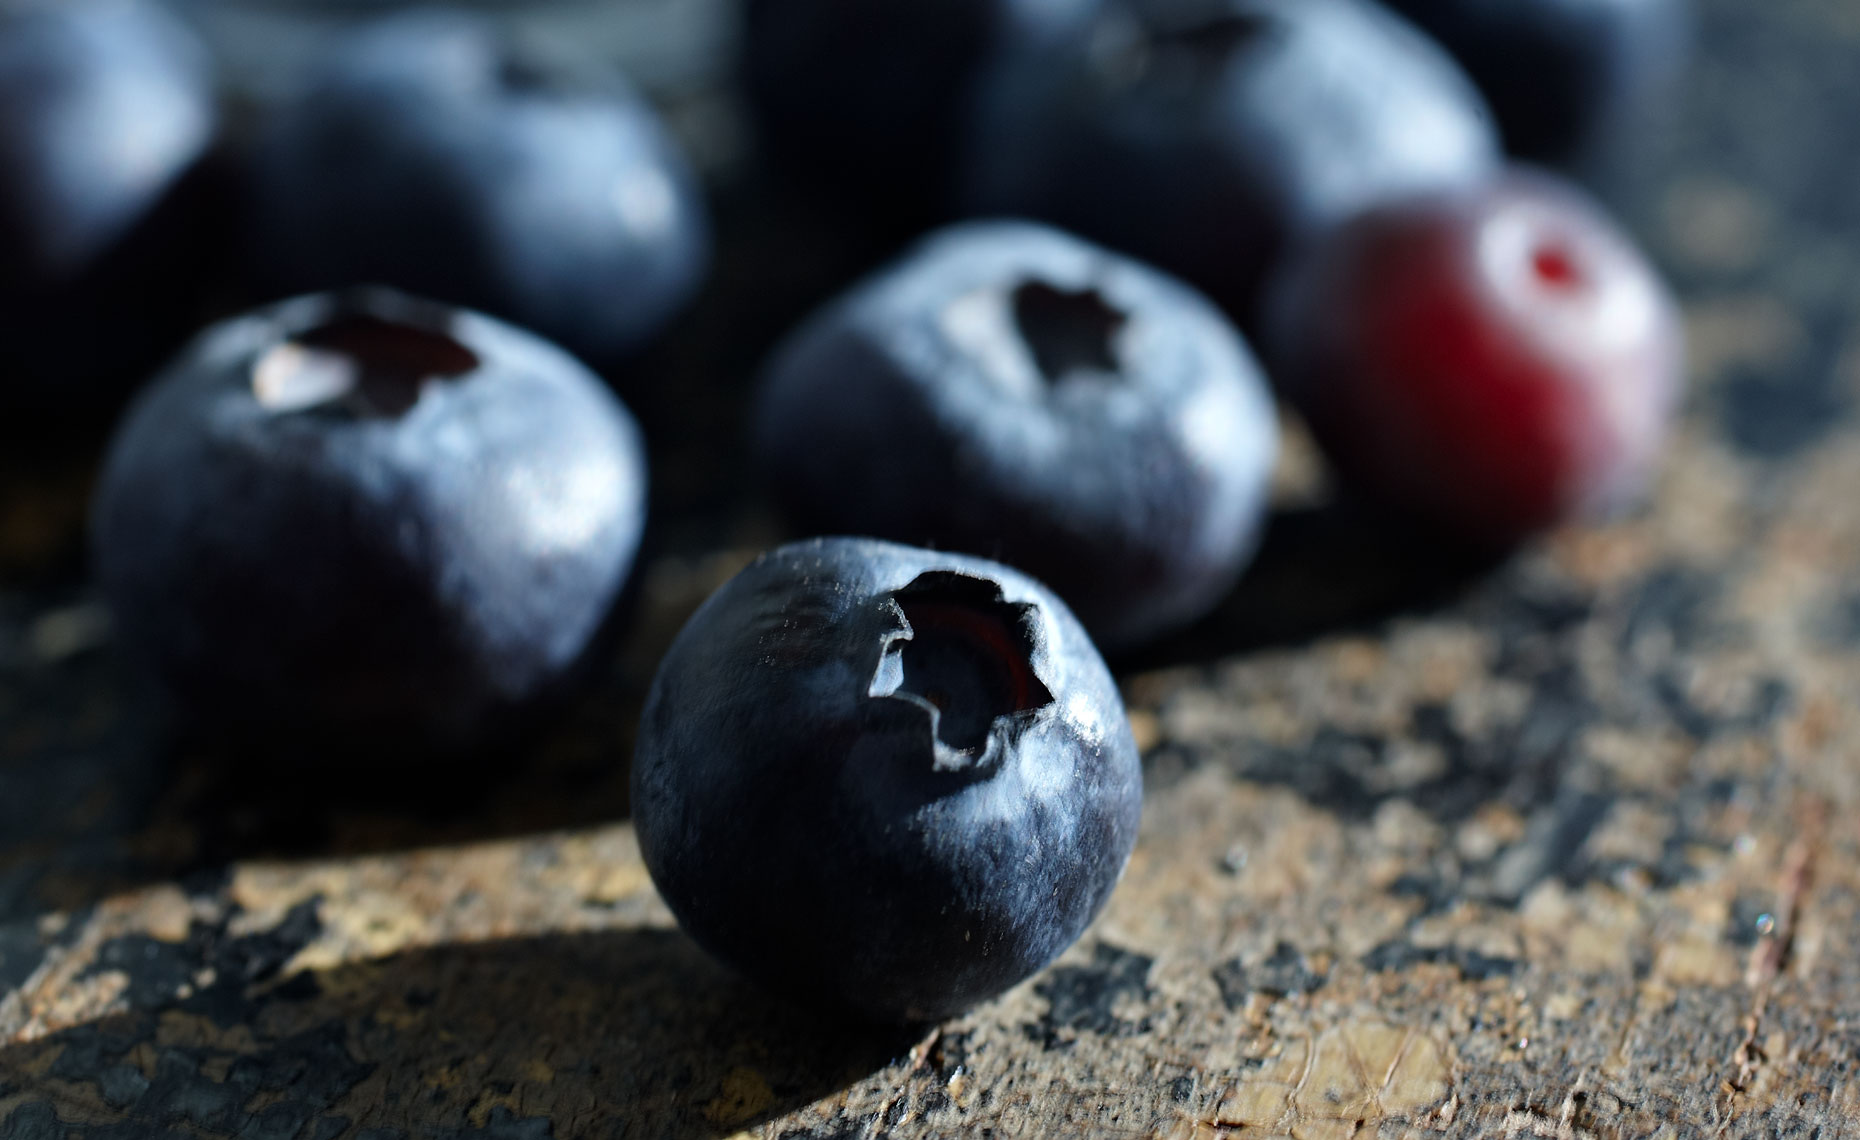 appetizers-fruits-vegetables-photographers-blueberries-22